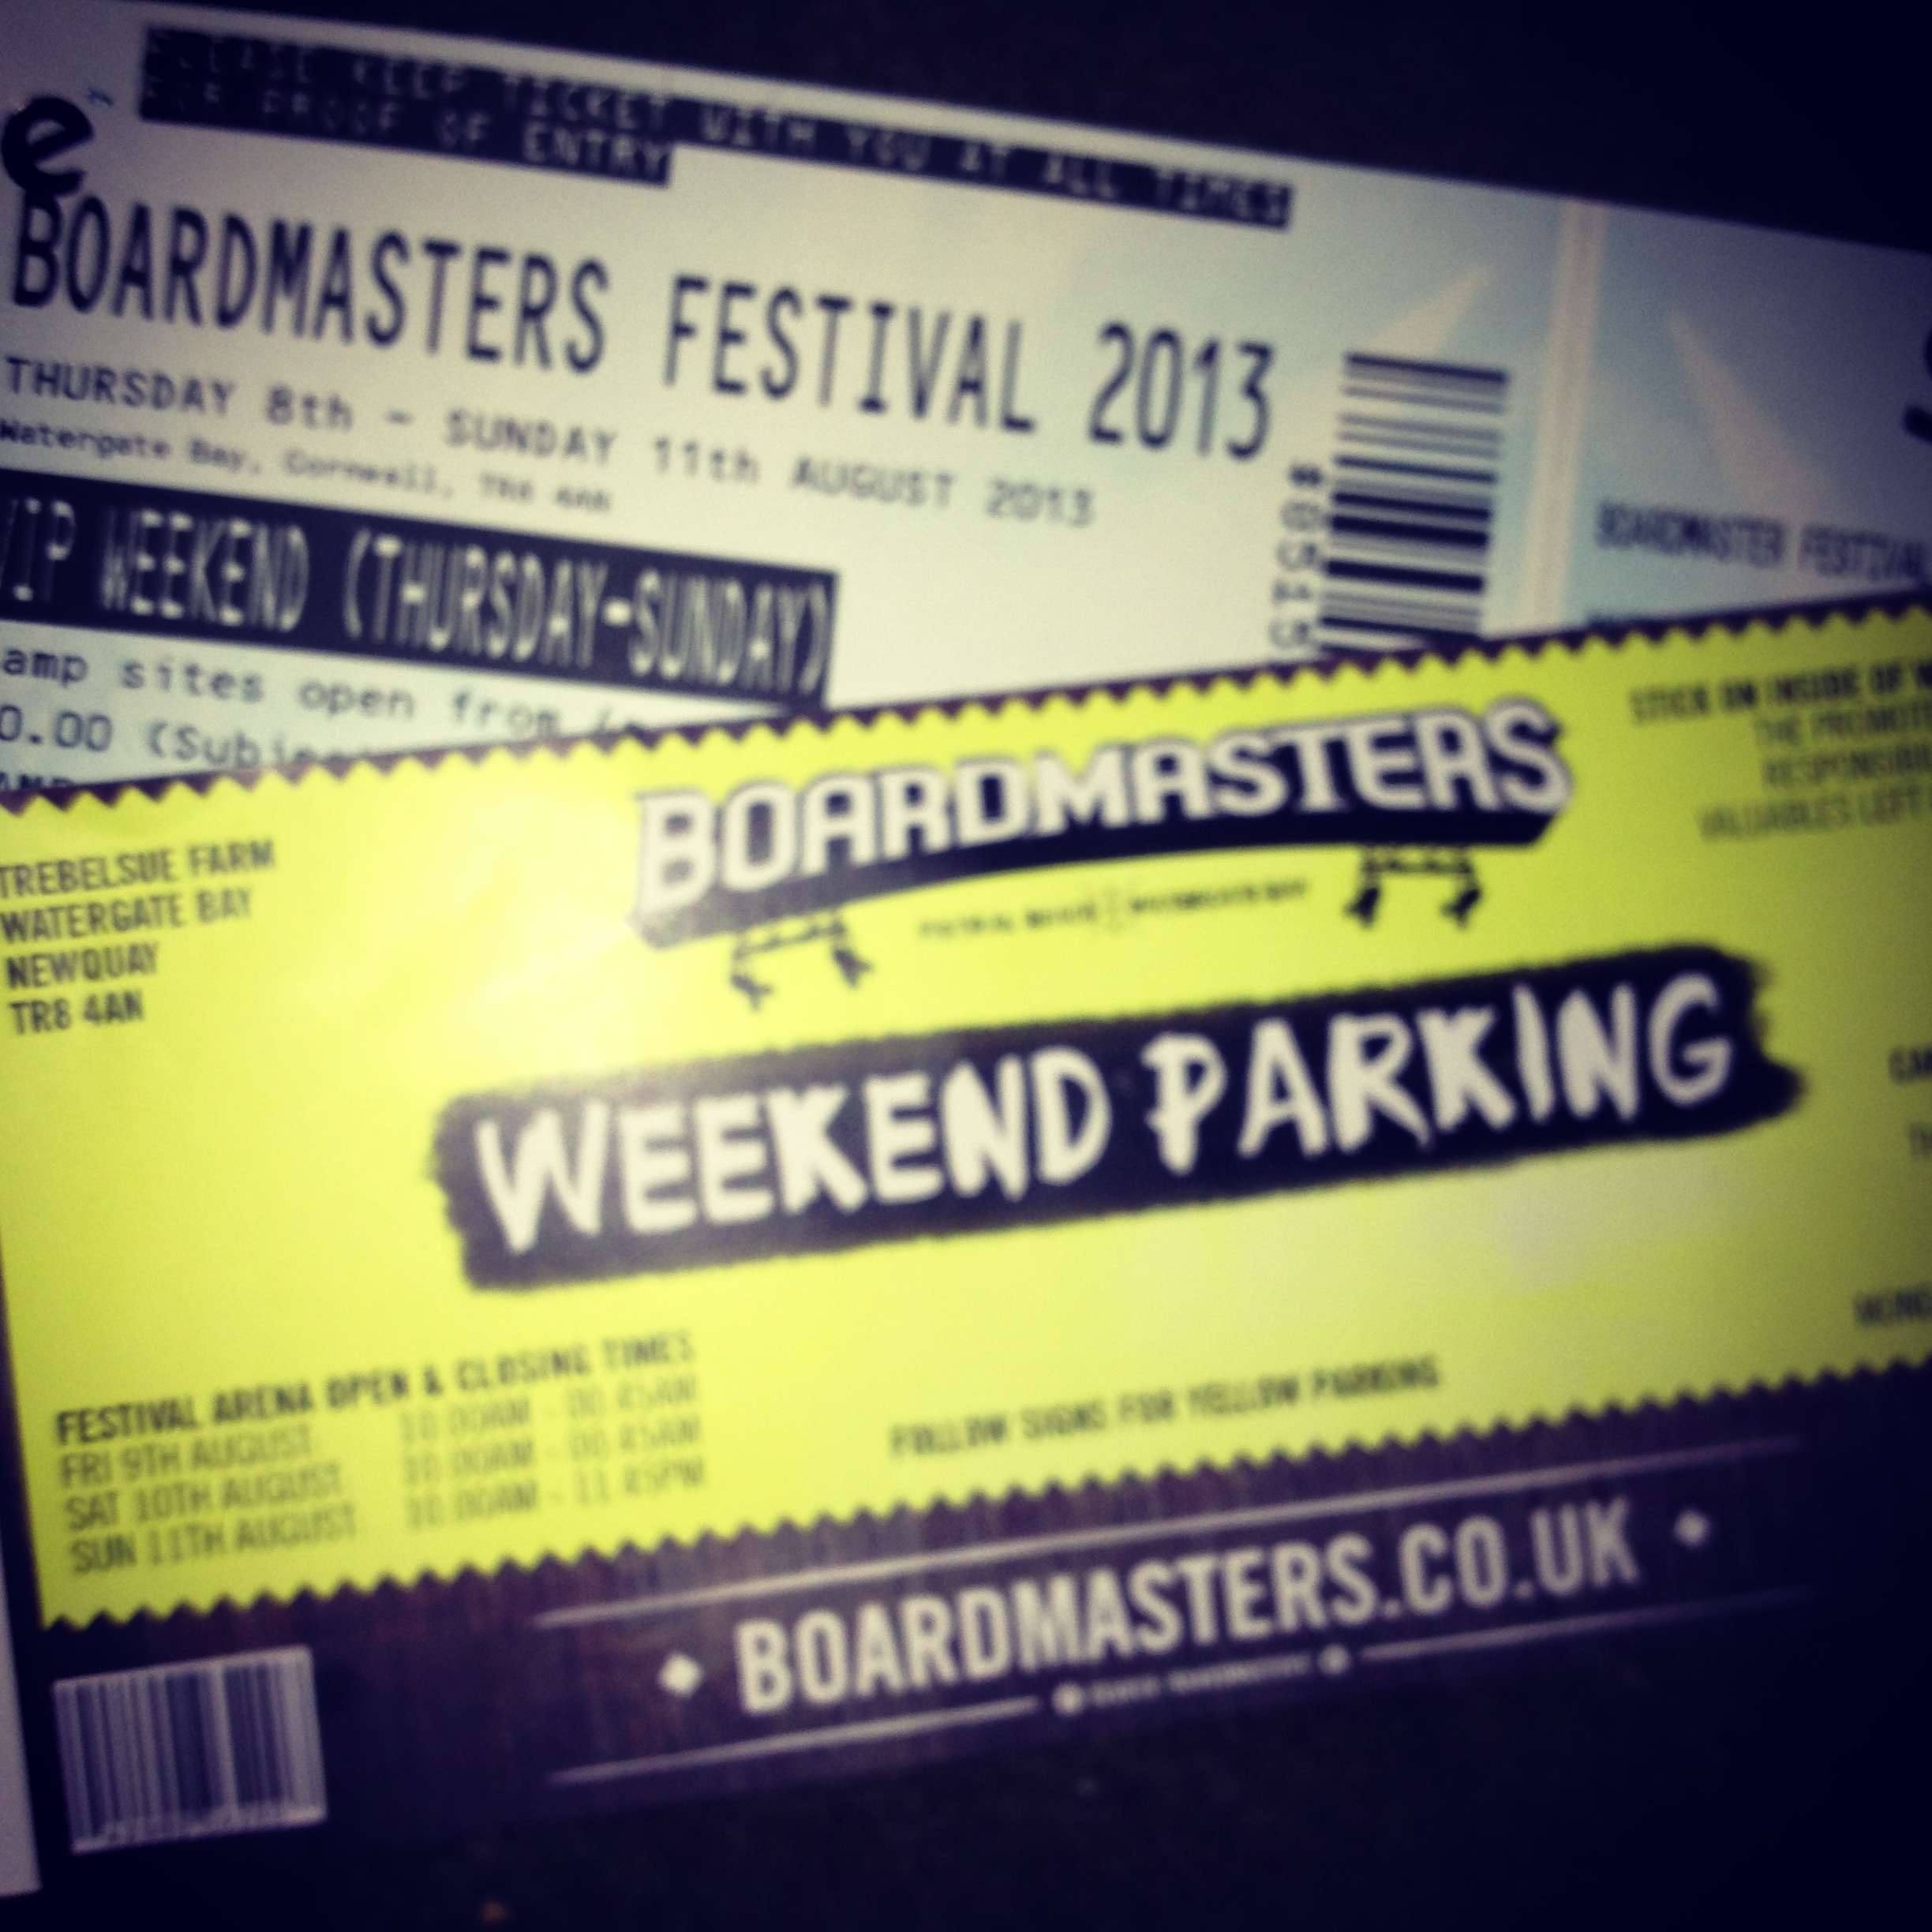 Boardmasters Vip Tickets And Car Parking And Camping For Whole